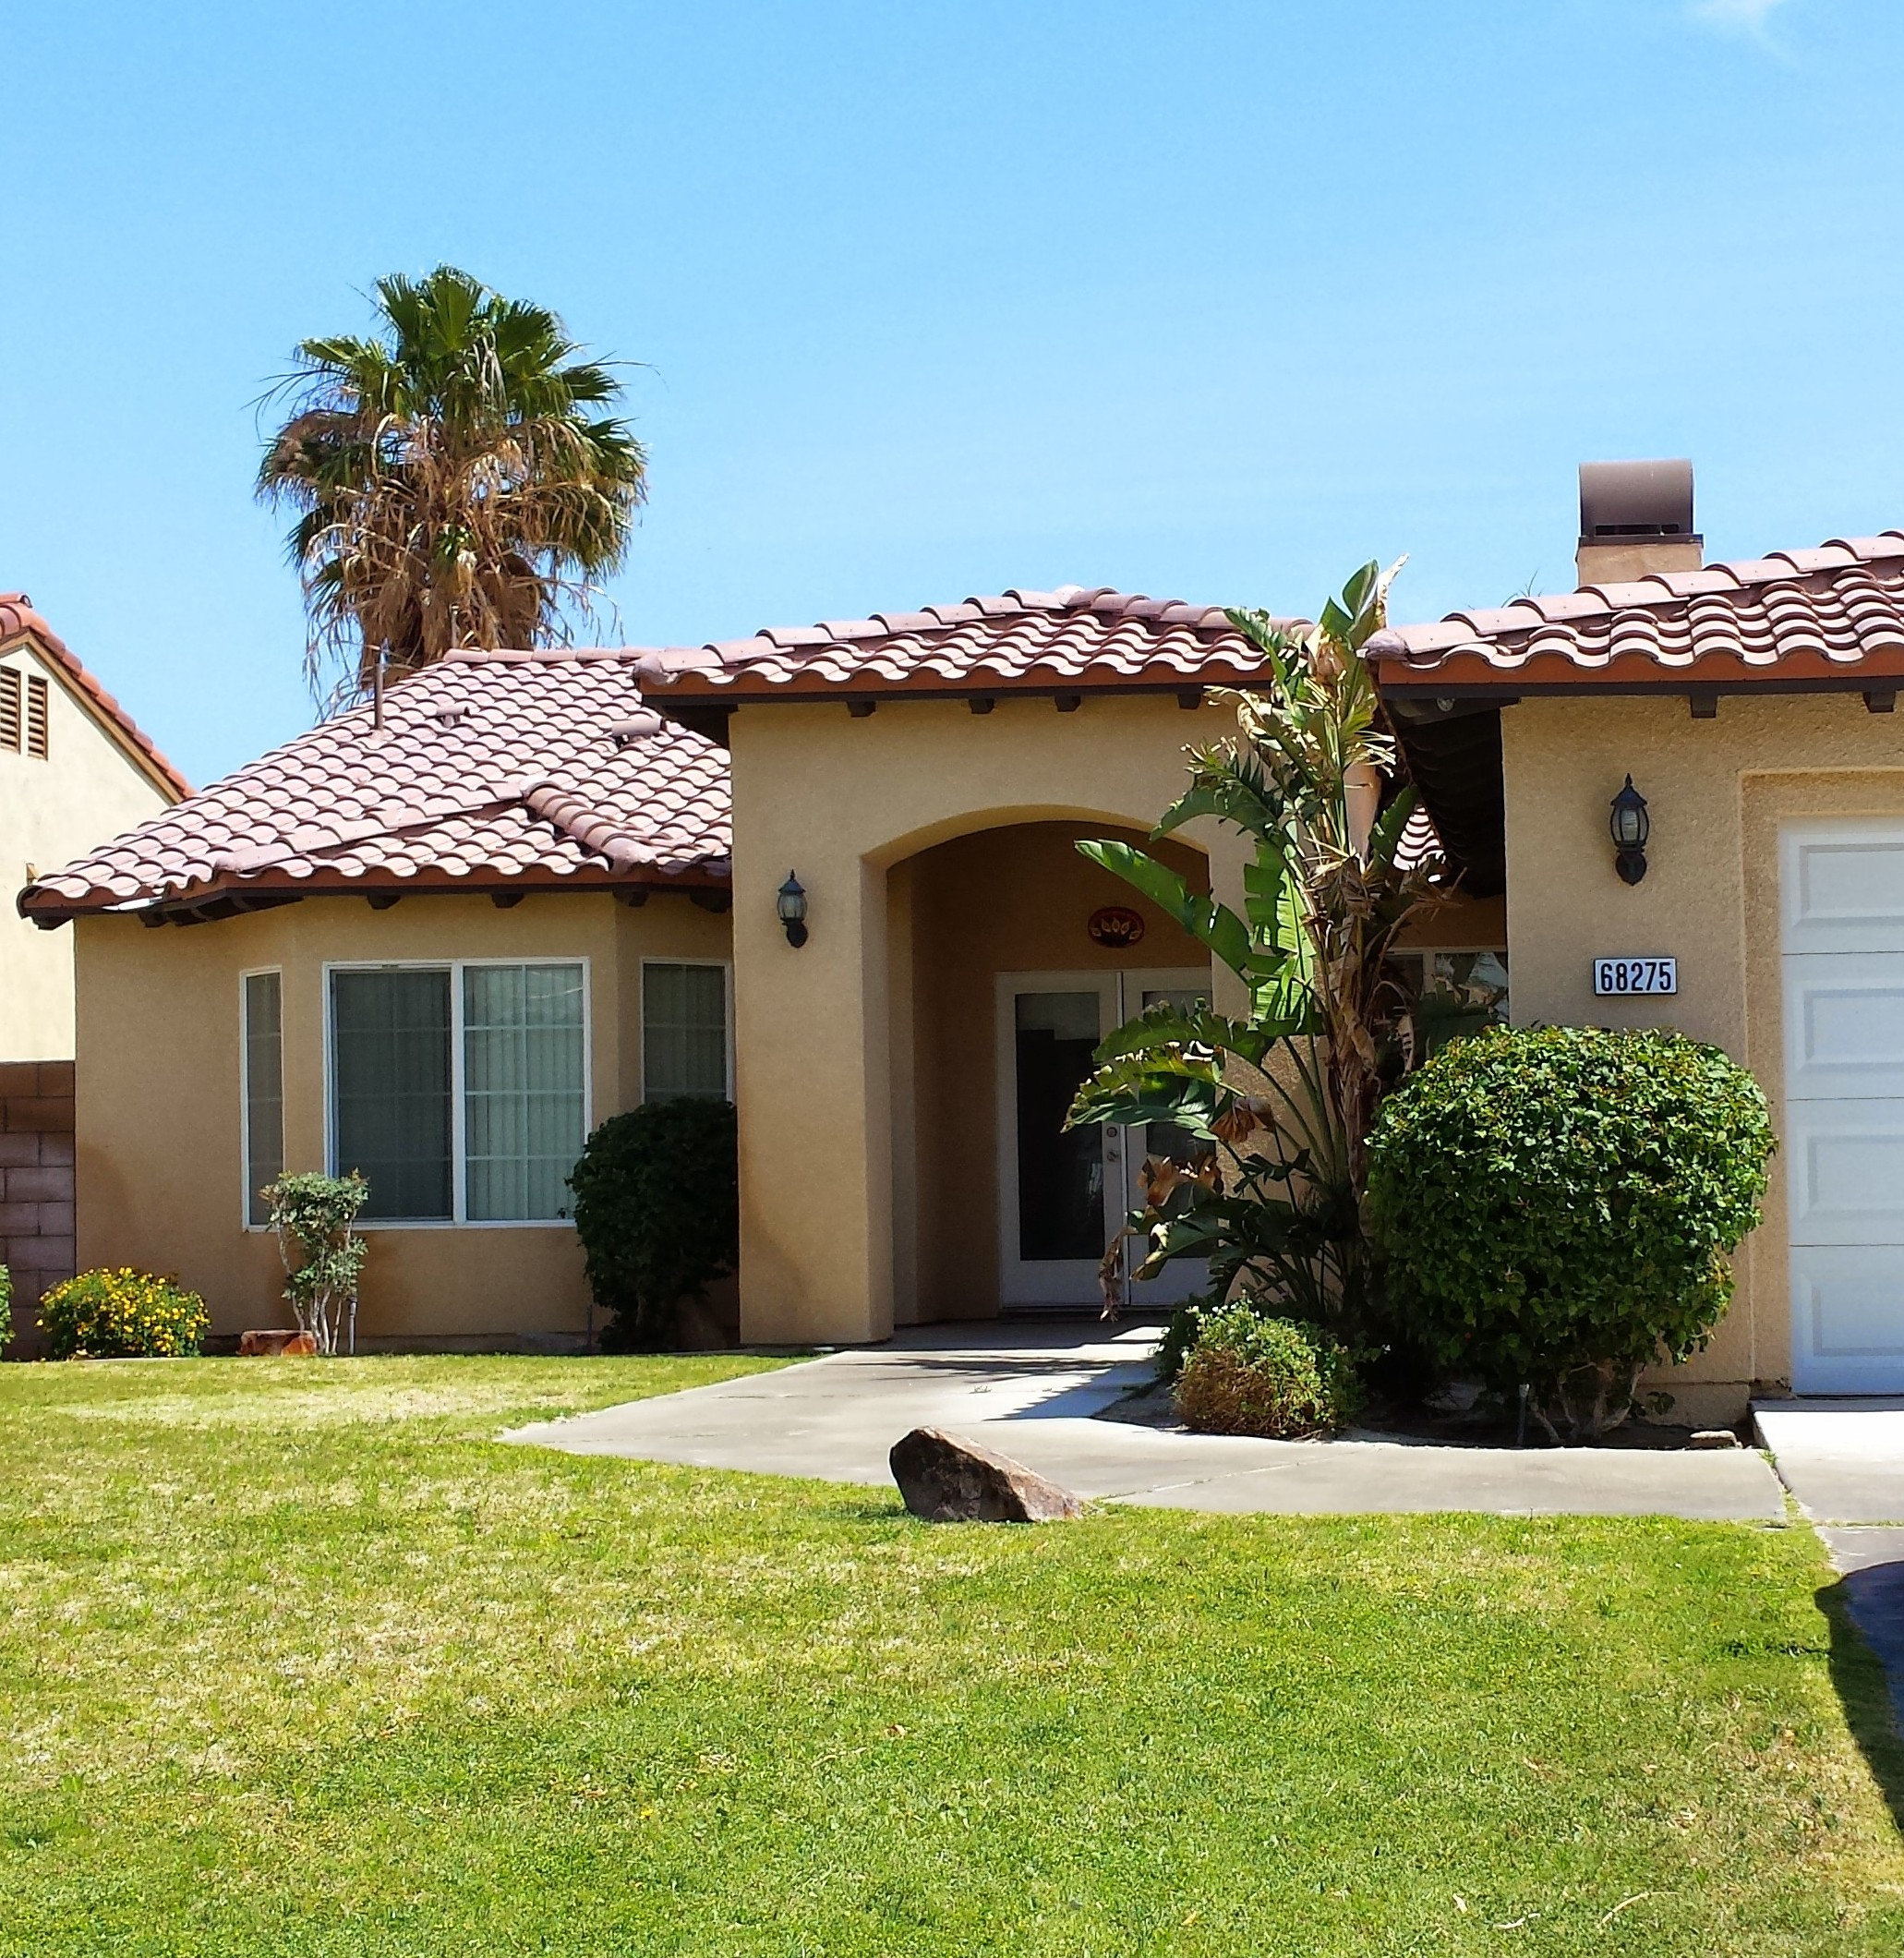 House in Coachella Valley Of Southern California